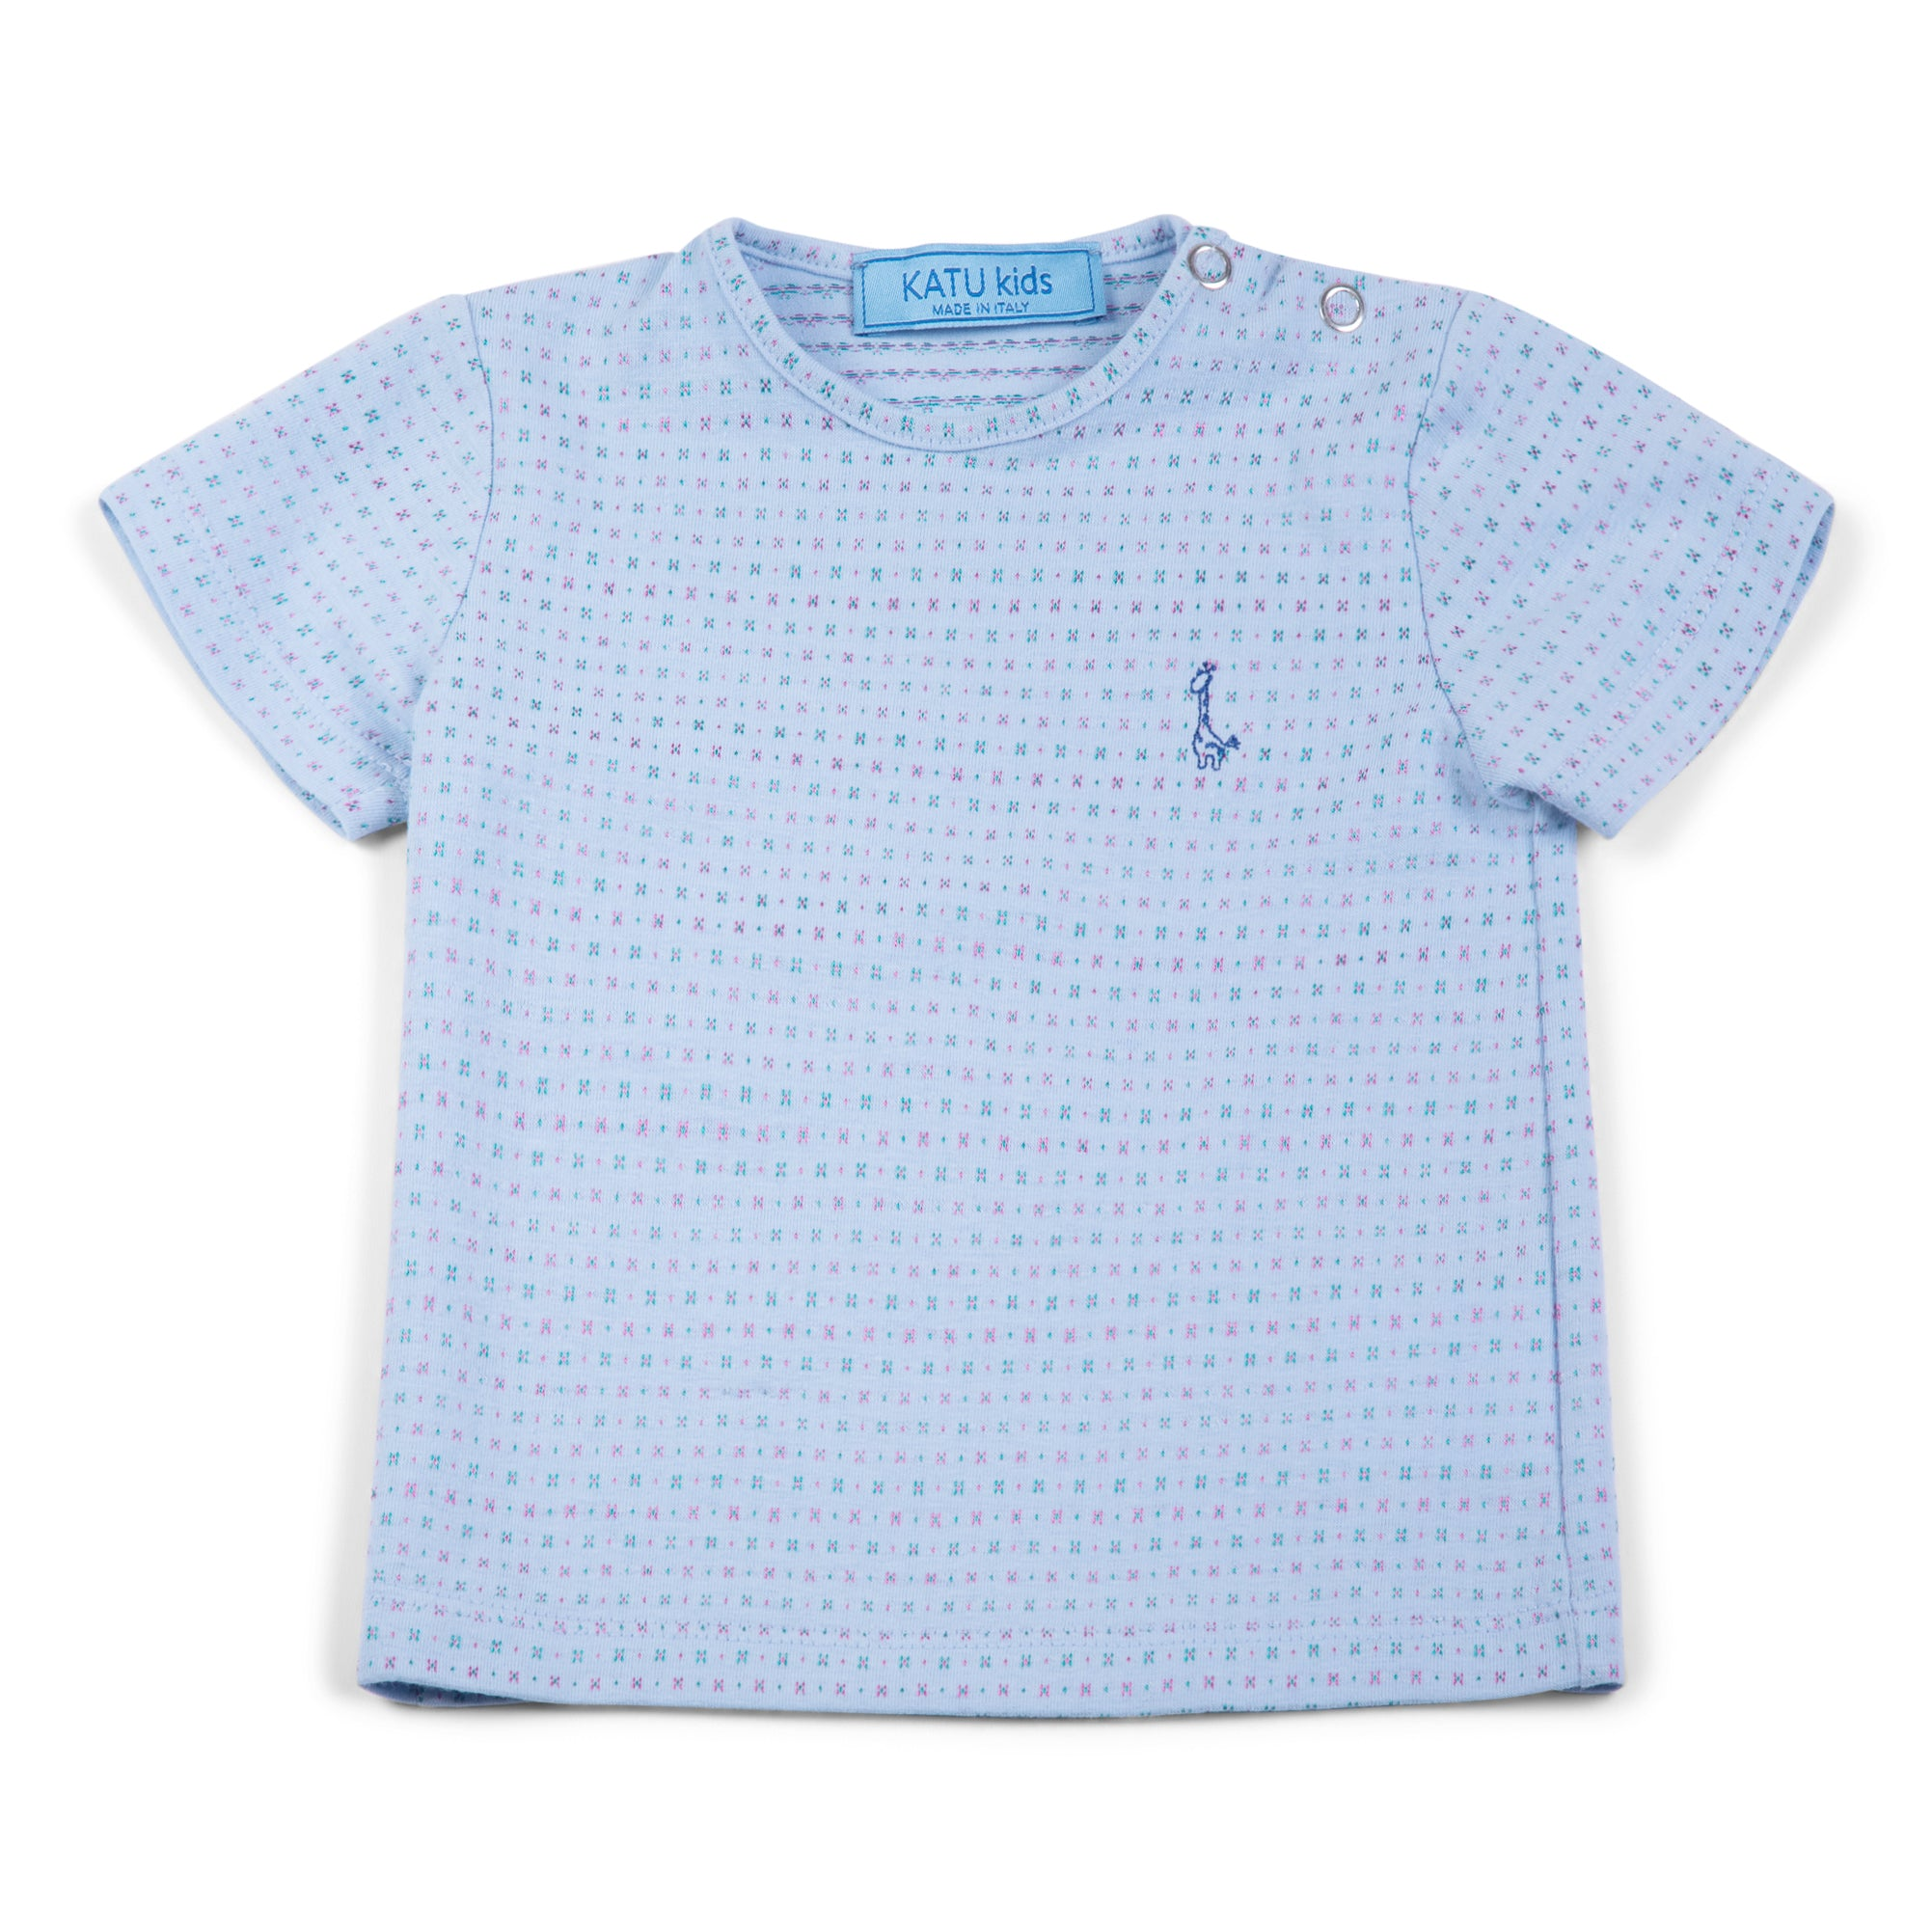 t-shirt in jacquard cotton jersey